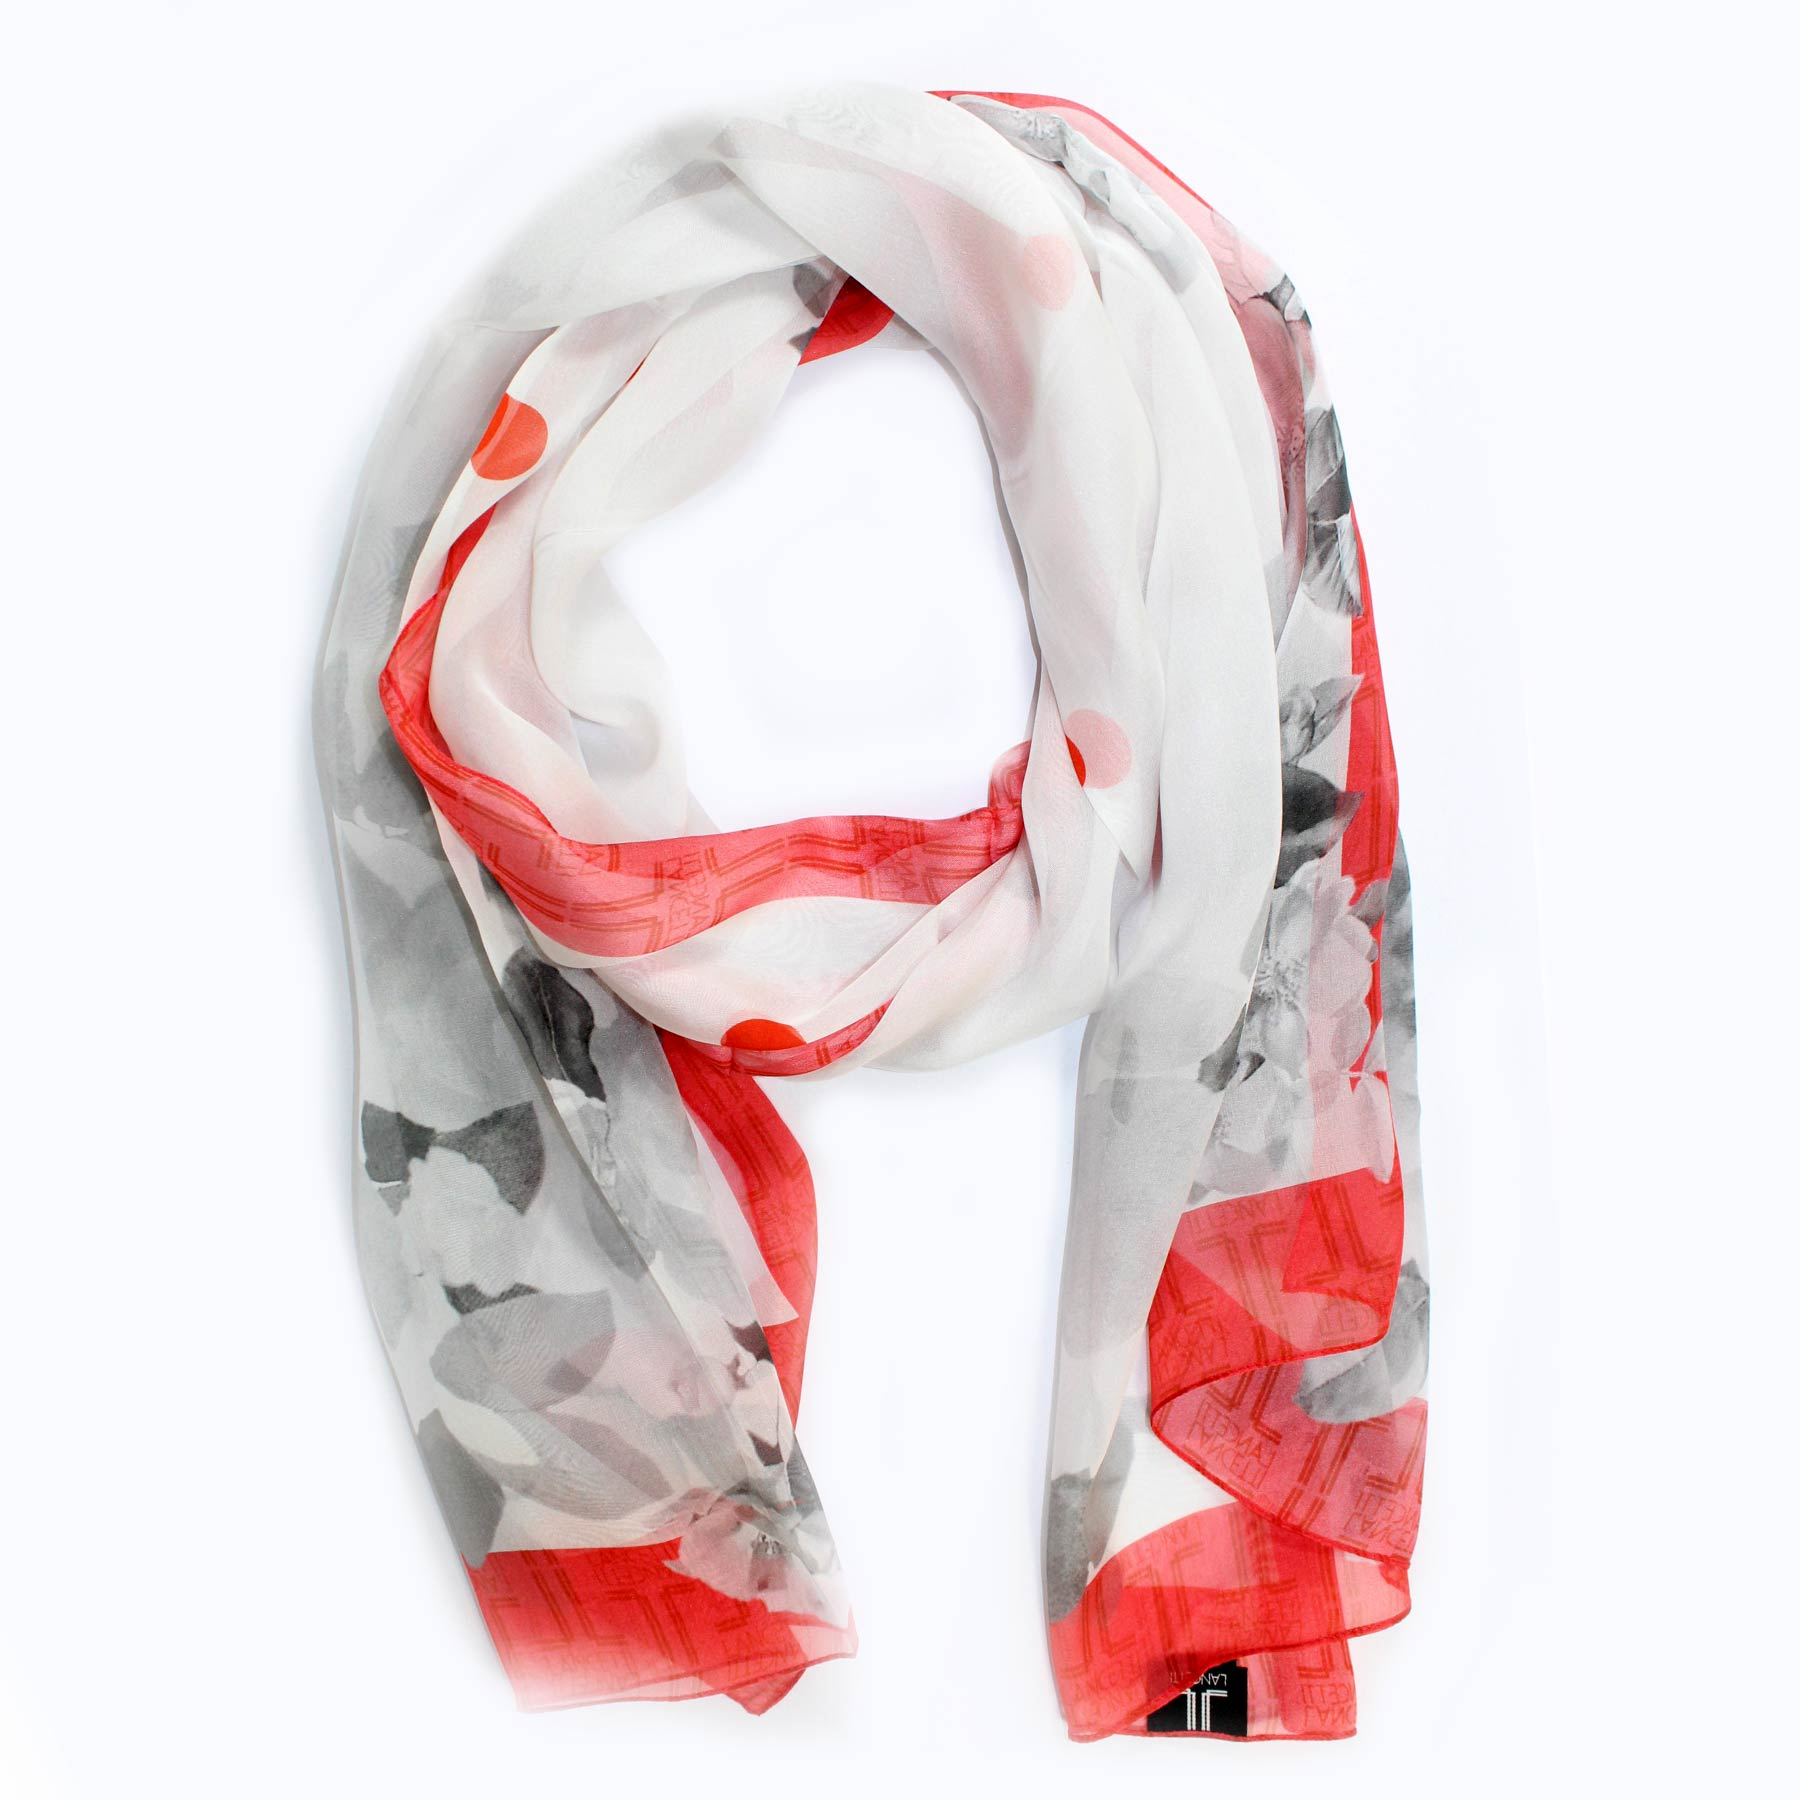 Lancetti Scarf Gray White Floral Red Border - Chiffon Silk Shawl - Made In Italy SALE